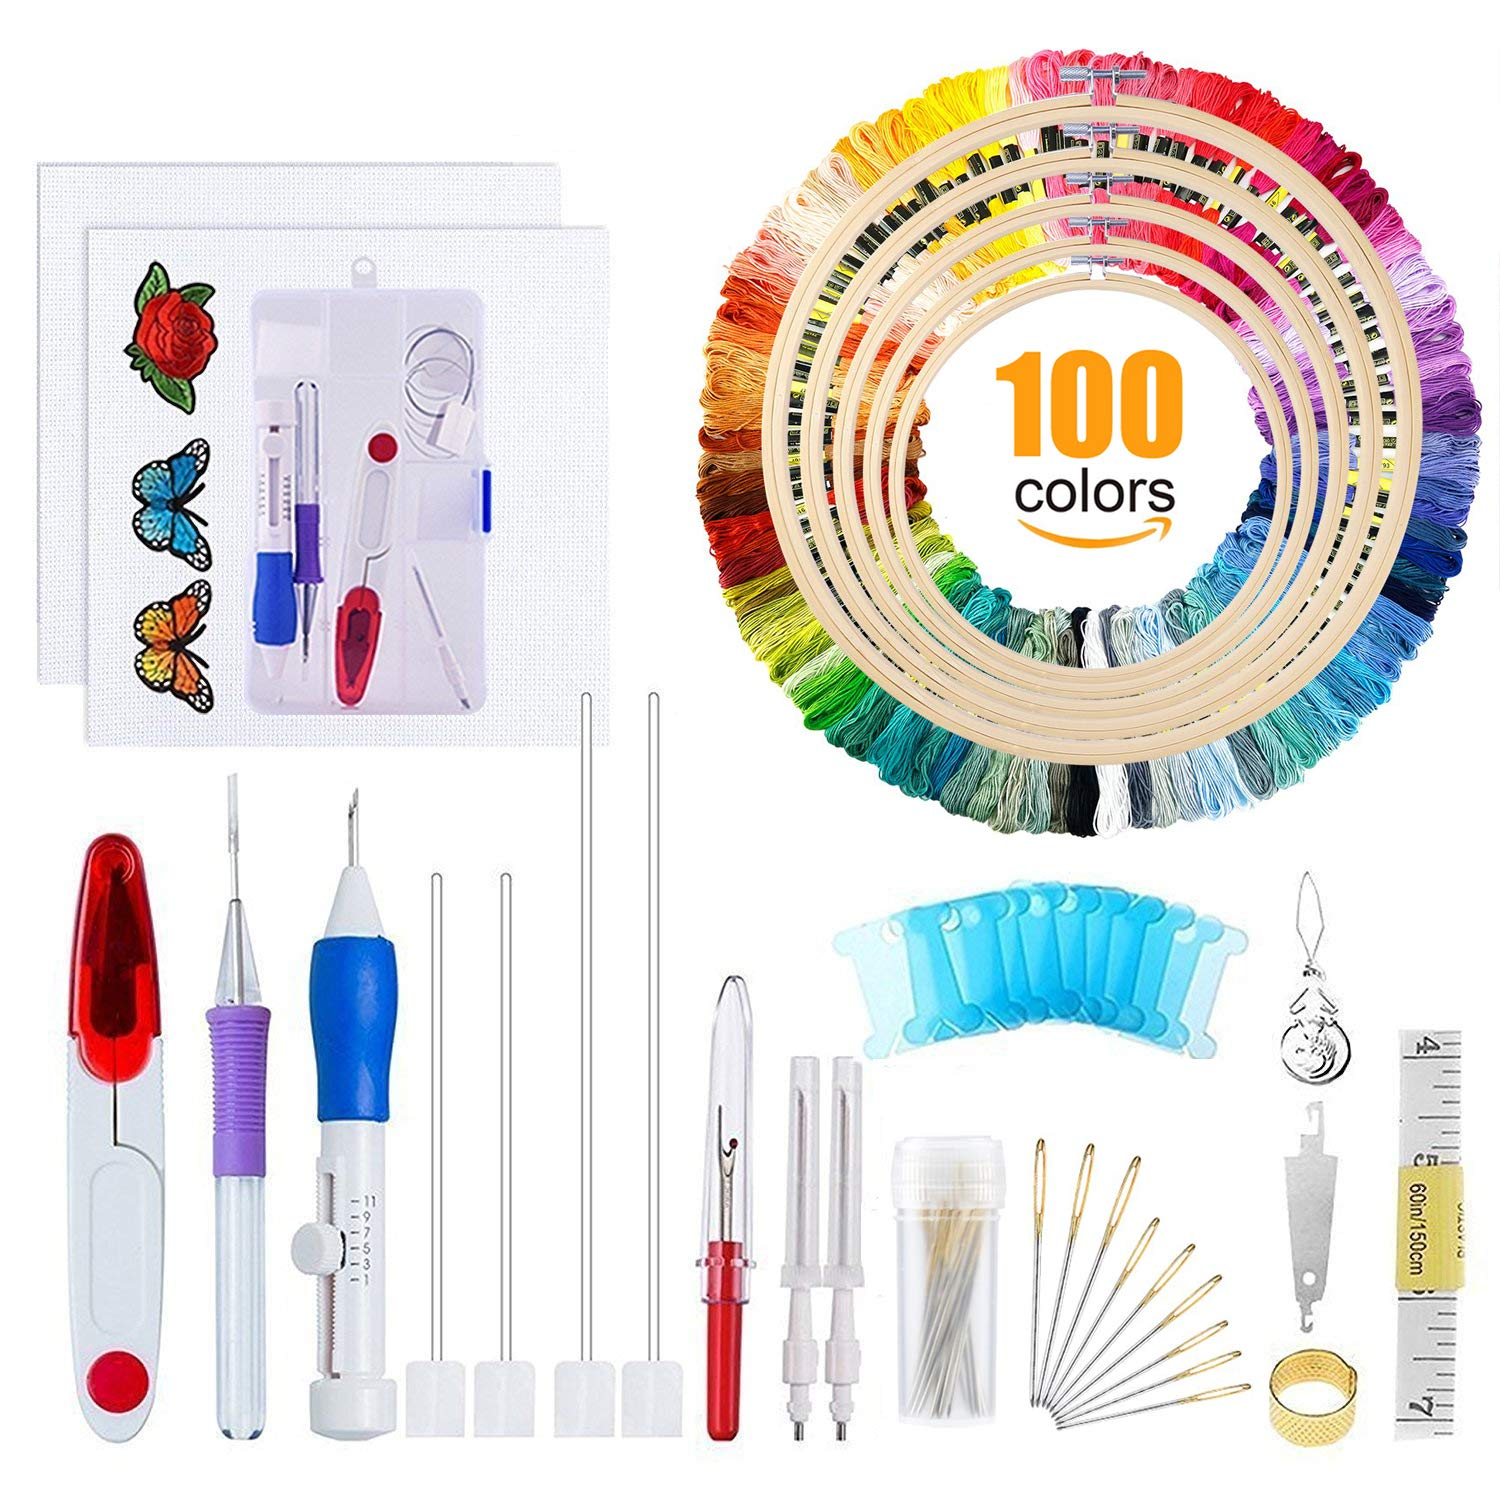 Embroidery Starter Kit Full Set - Including Magic Embroidery Pen Punch Needle,5 Pieces Bamboo Embroidery Hoops, 100 Color Threads,Embroidery Needles Stitching Punch Pen Set Craft Tool for Beginner by WeeDee